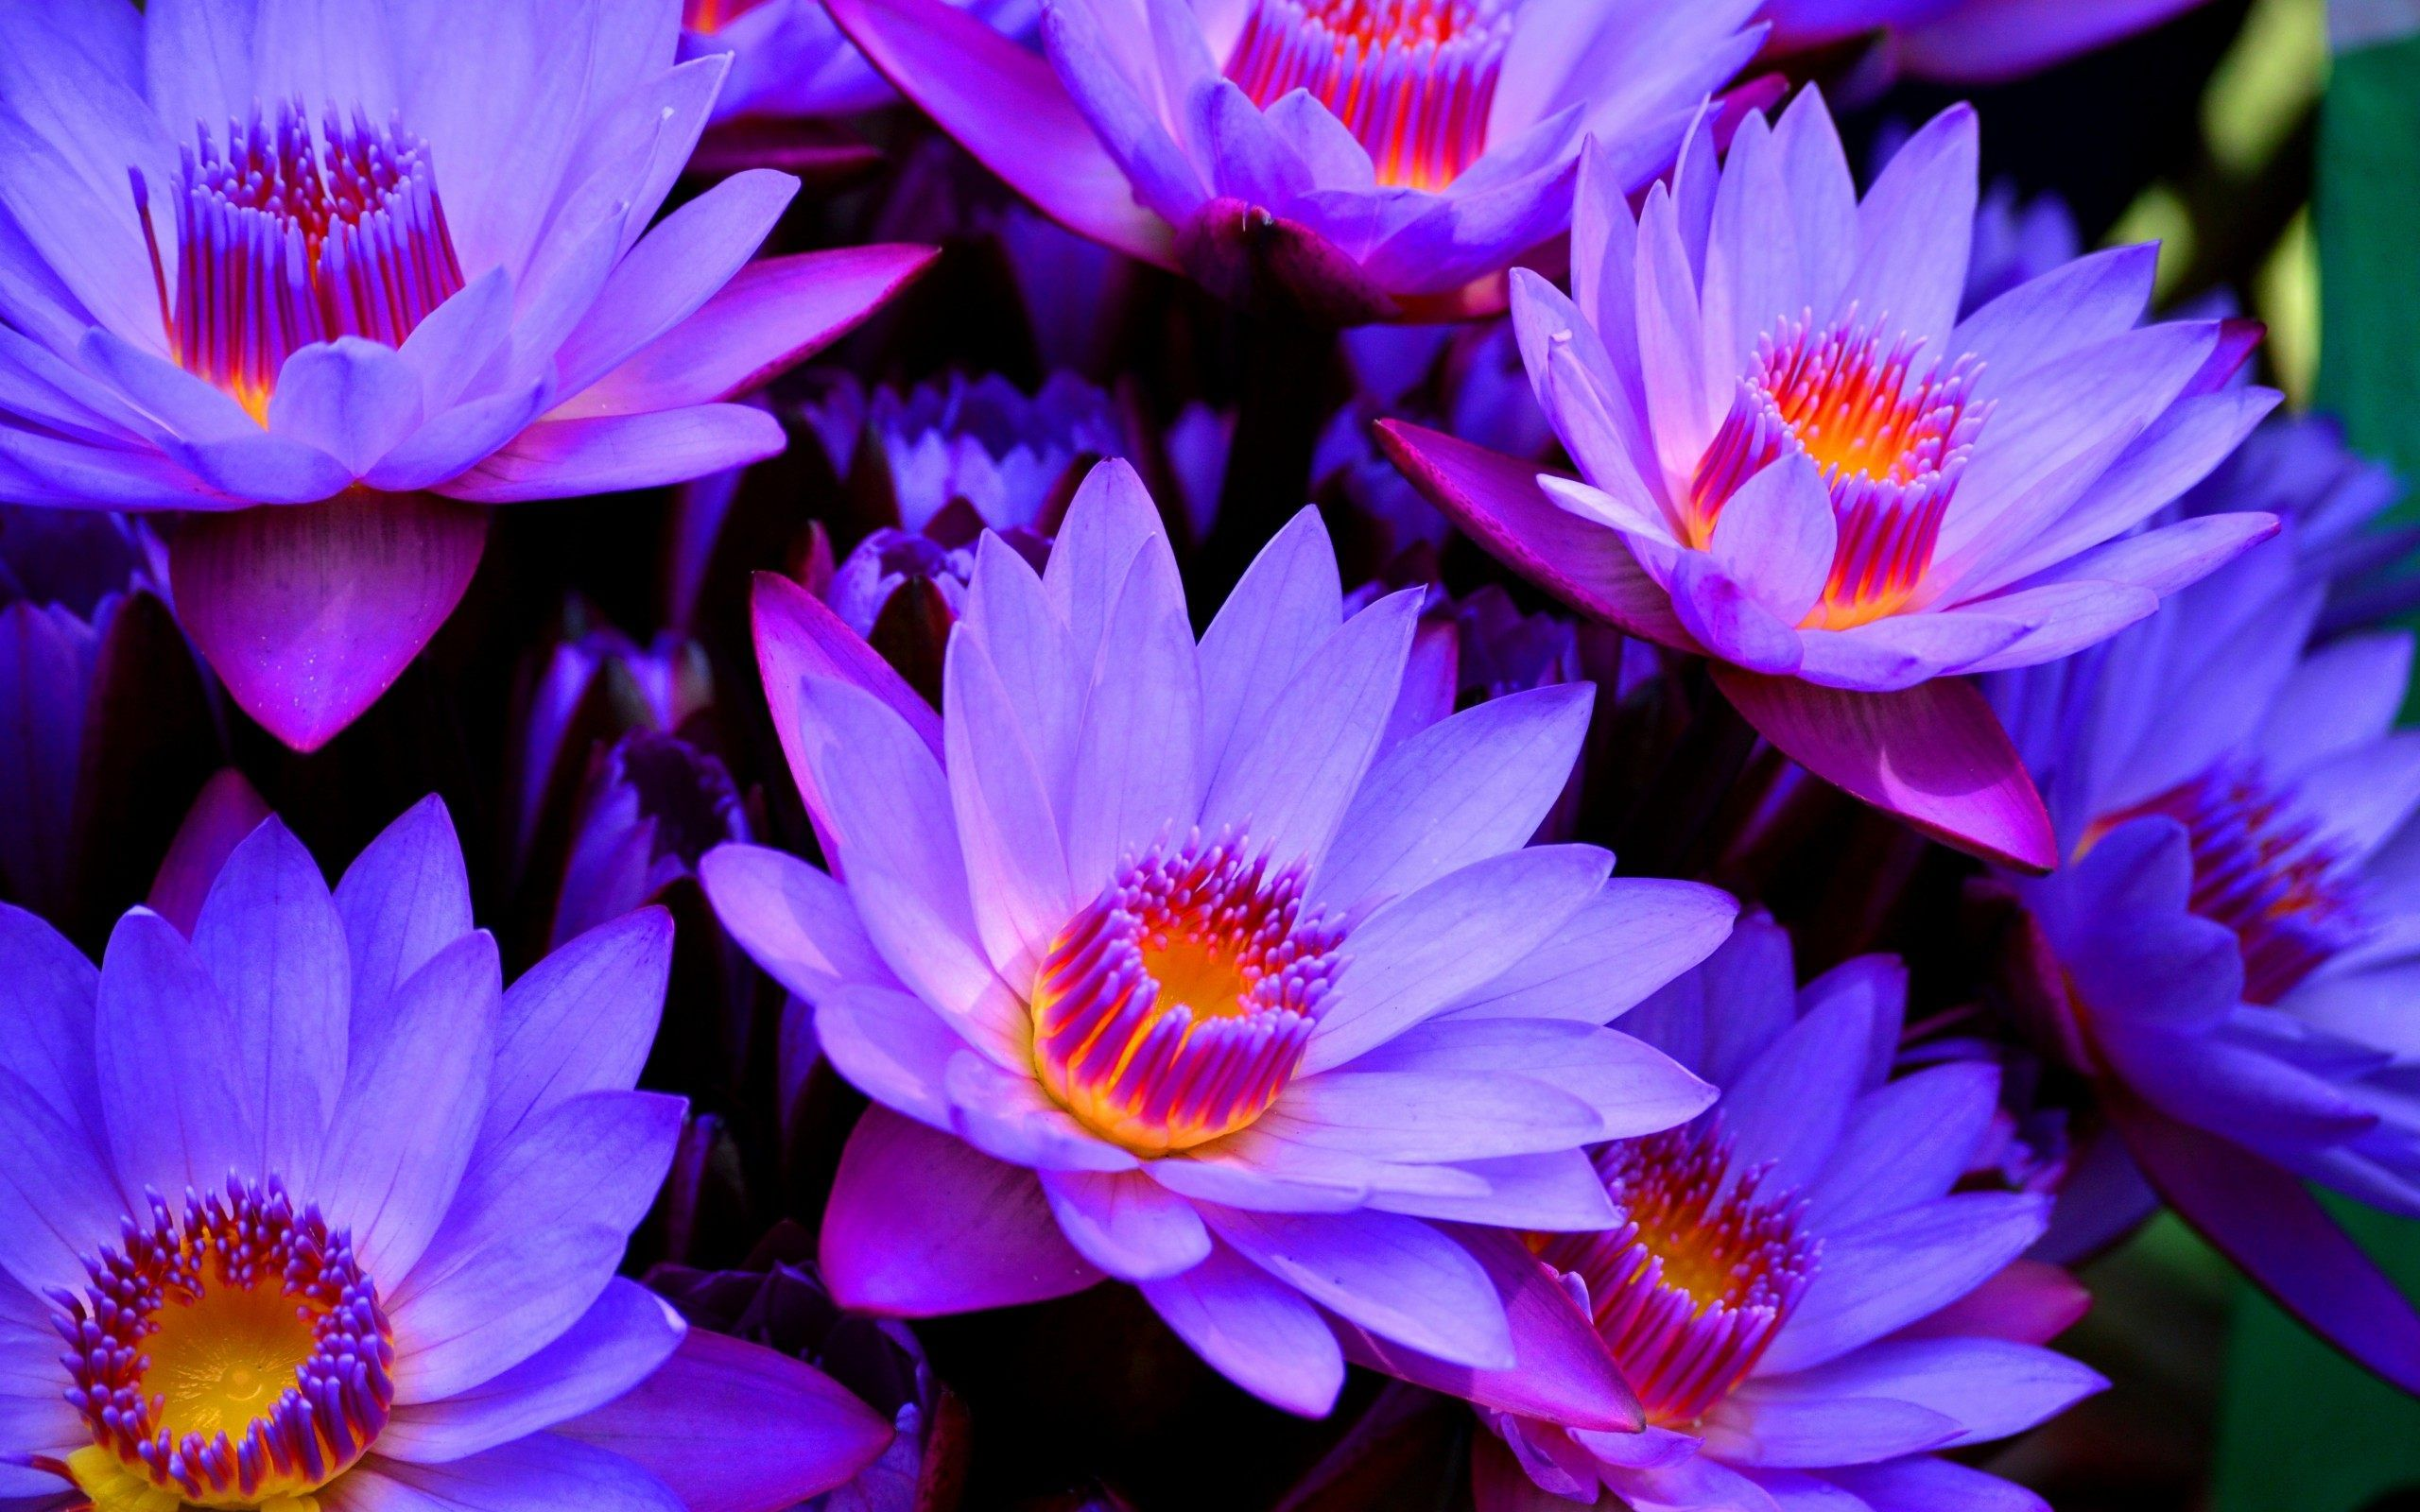 Purple Lotus Flower Wallpaper Picture With High Definition Wallpaper